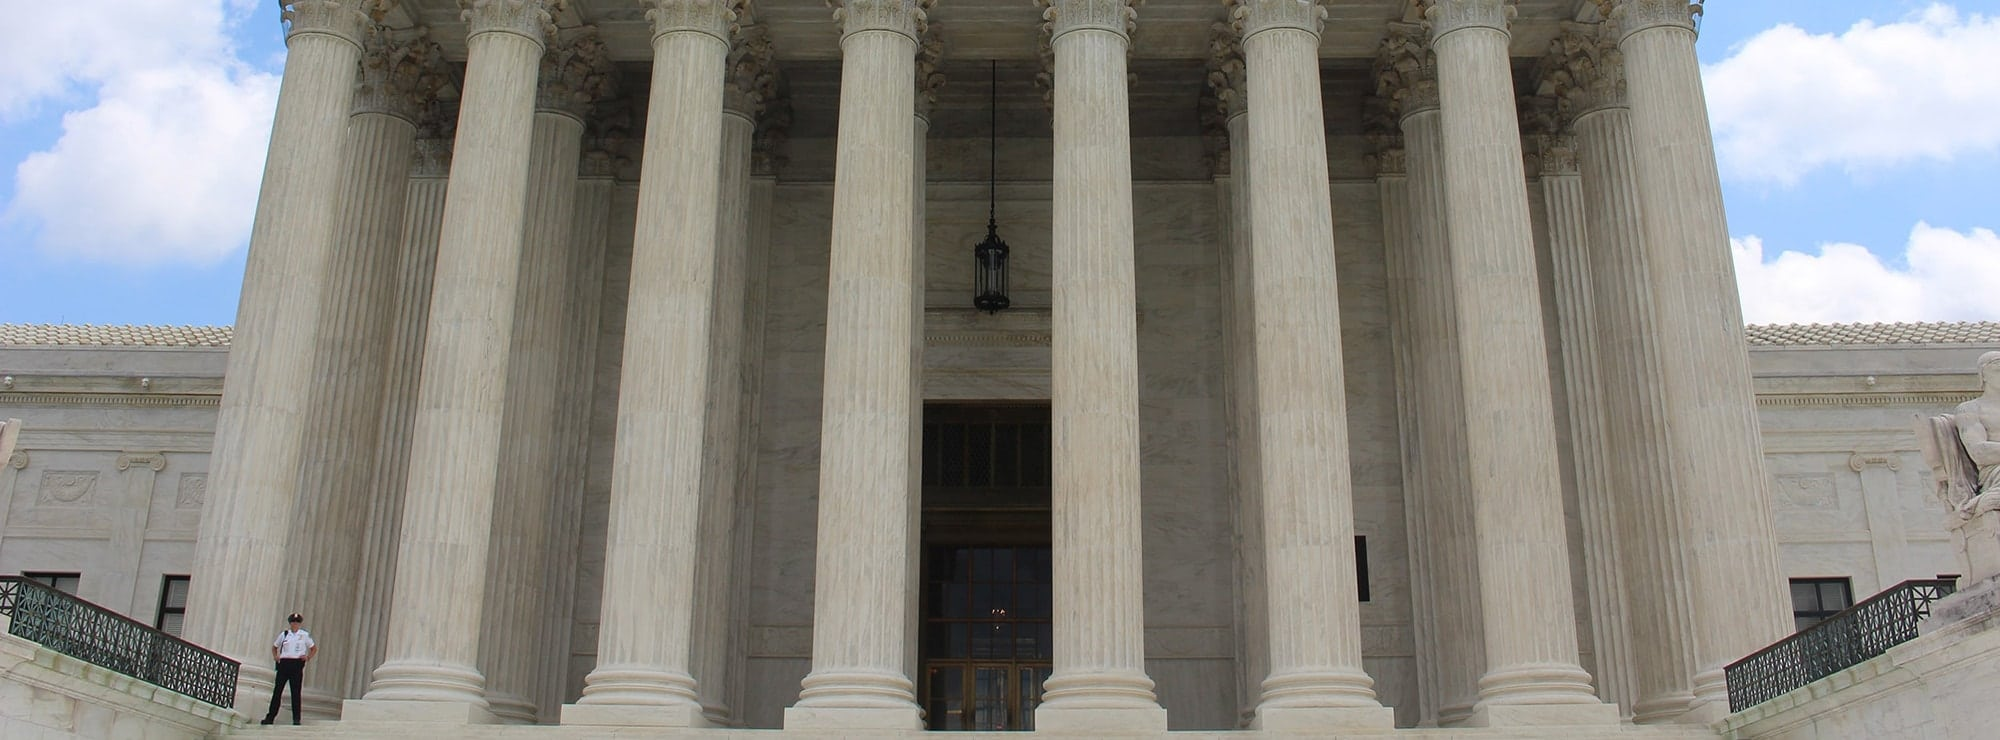 Marble pillars outside of court house